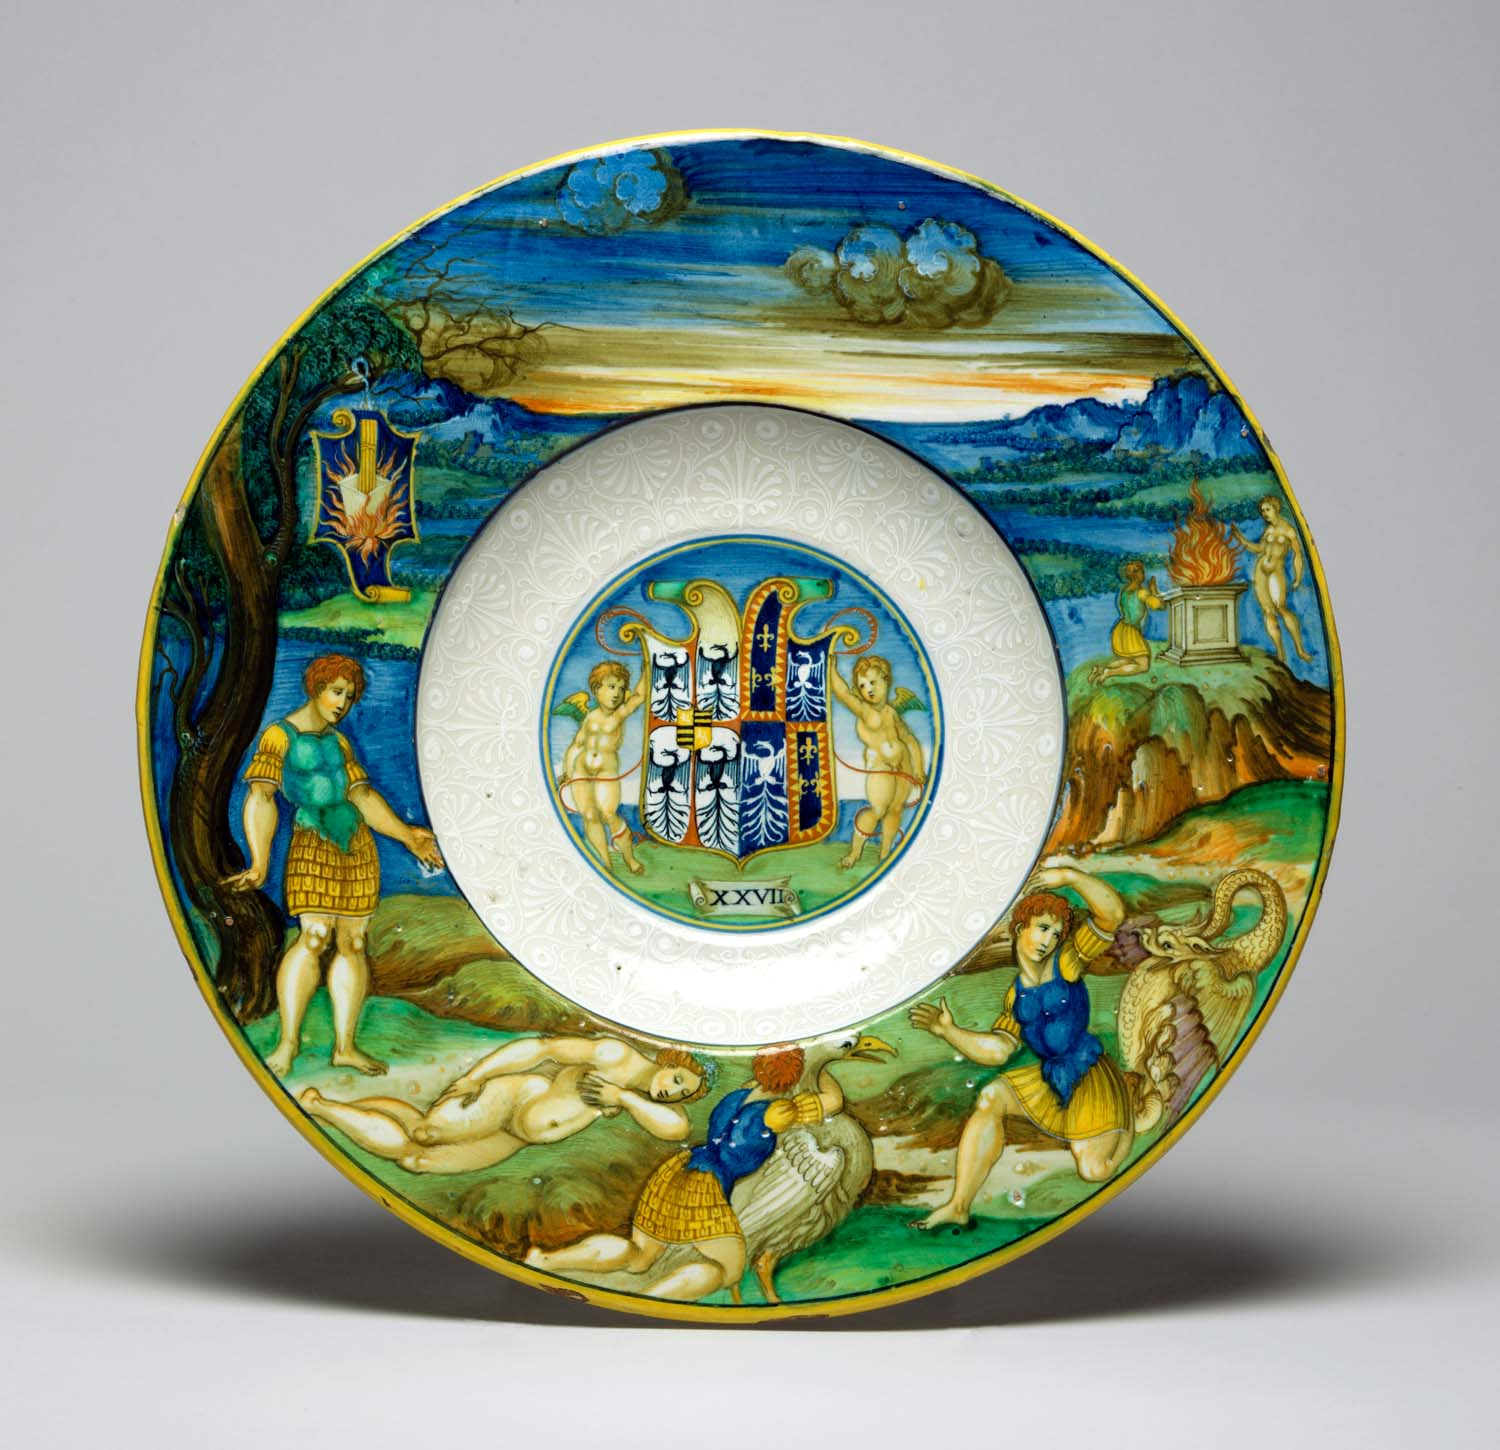 A bowl showing the story